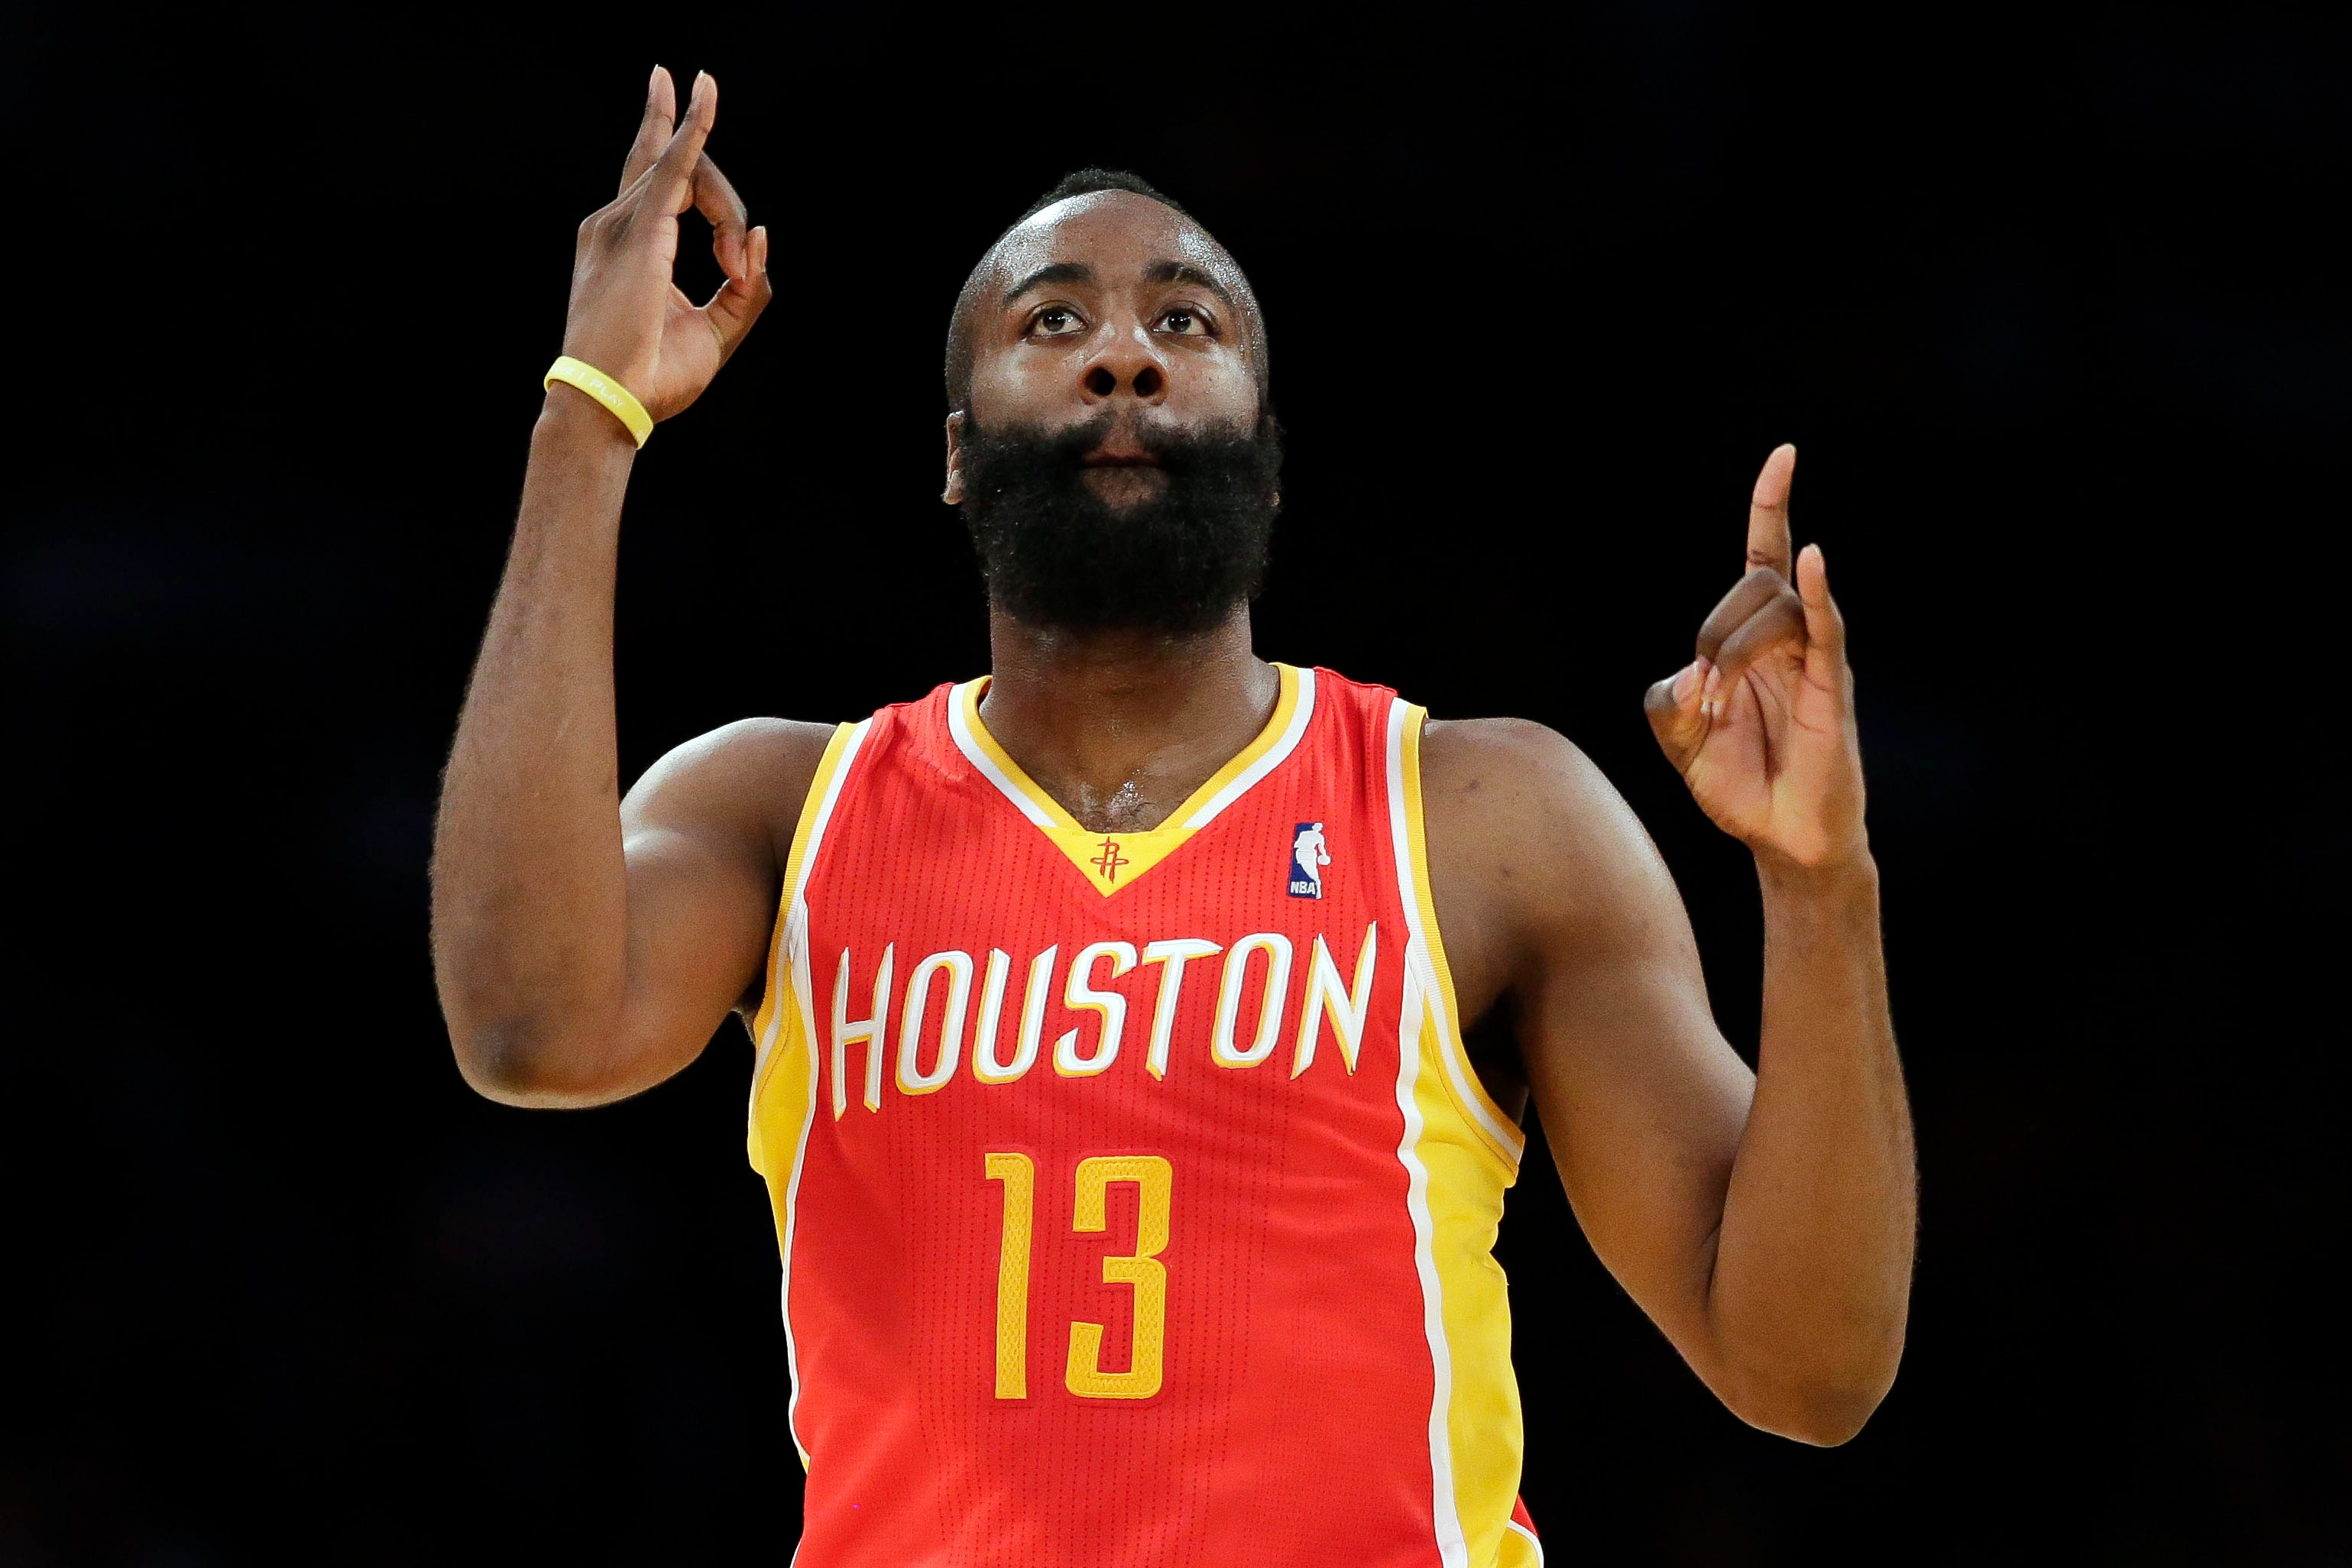 James harden trade ramps up expectations in houston reunion with